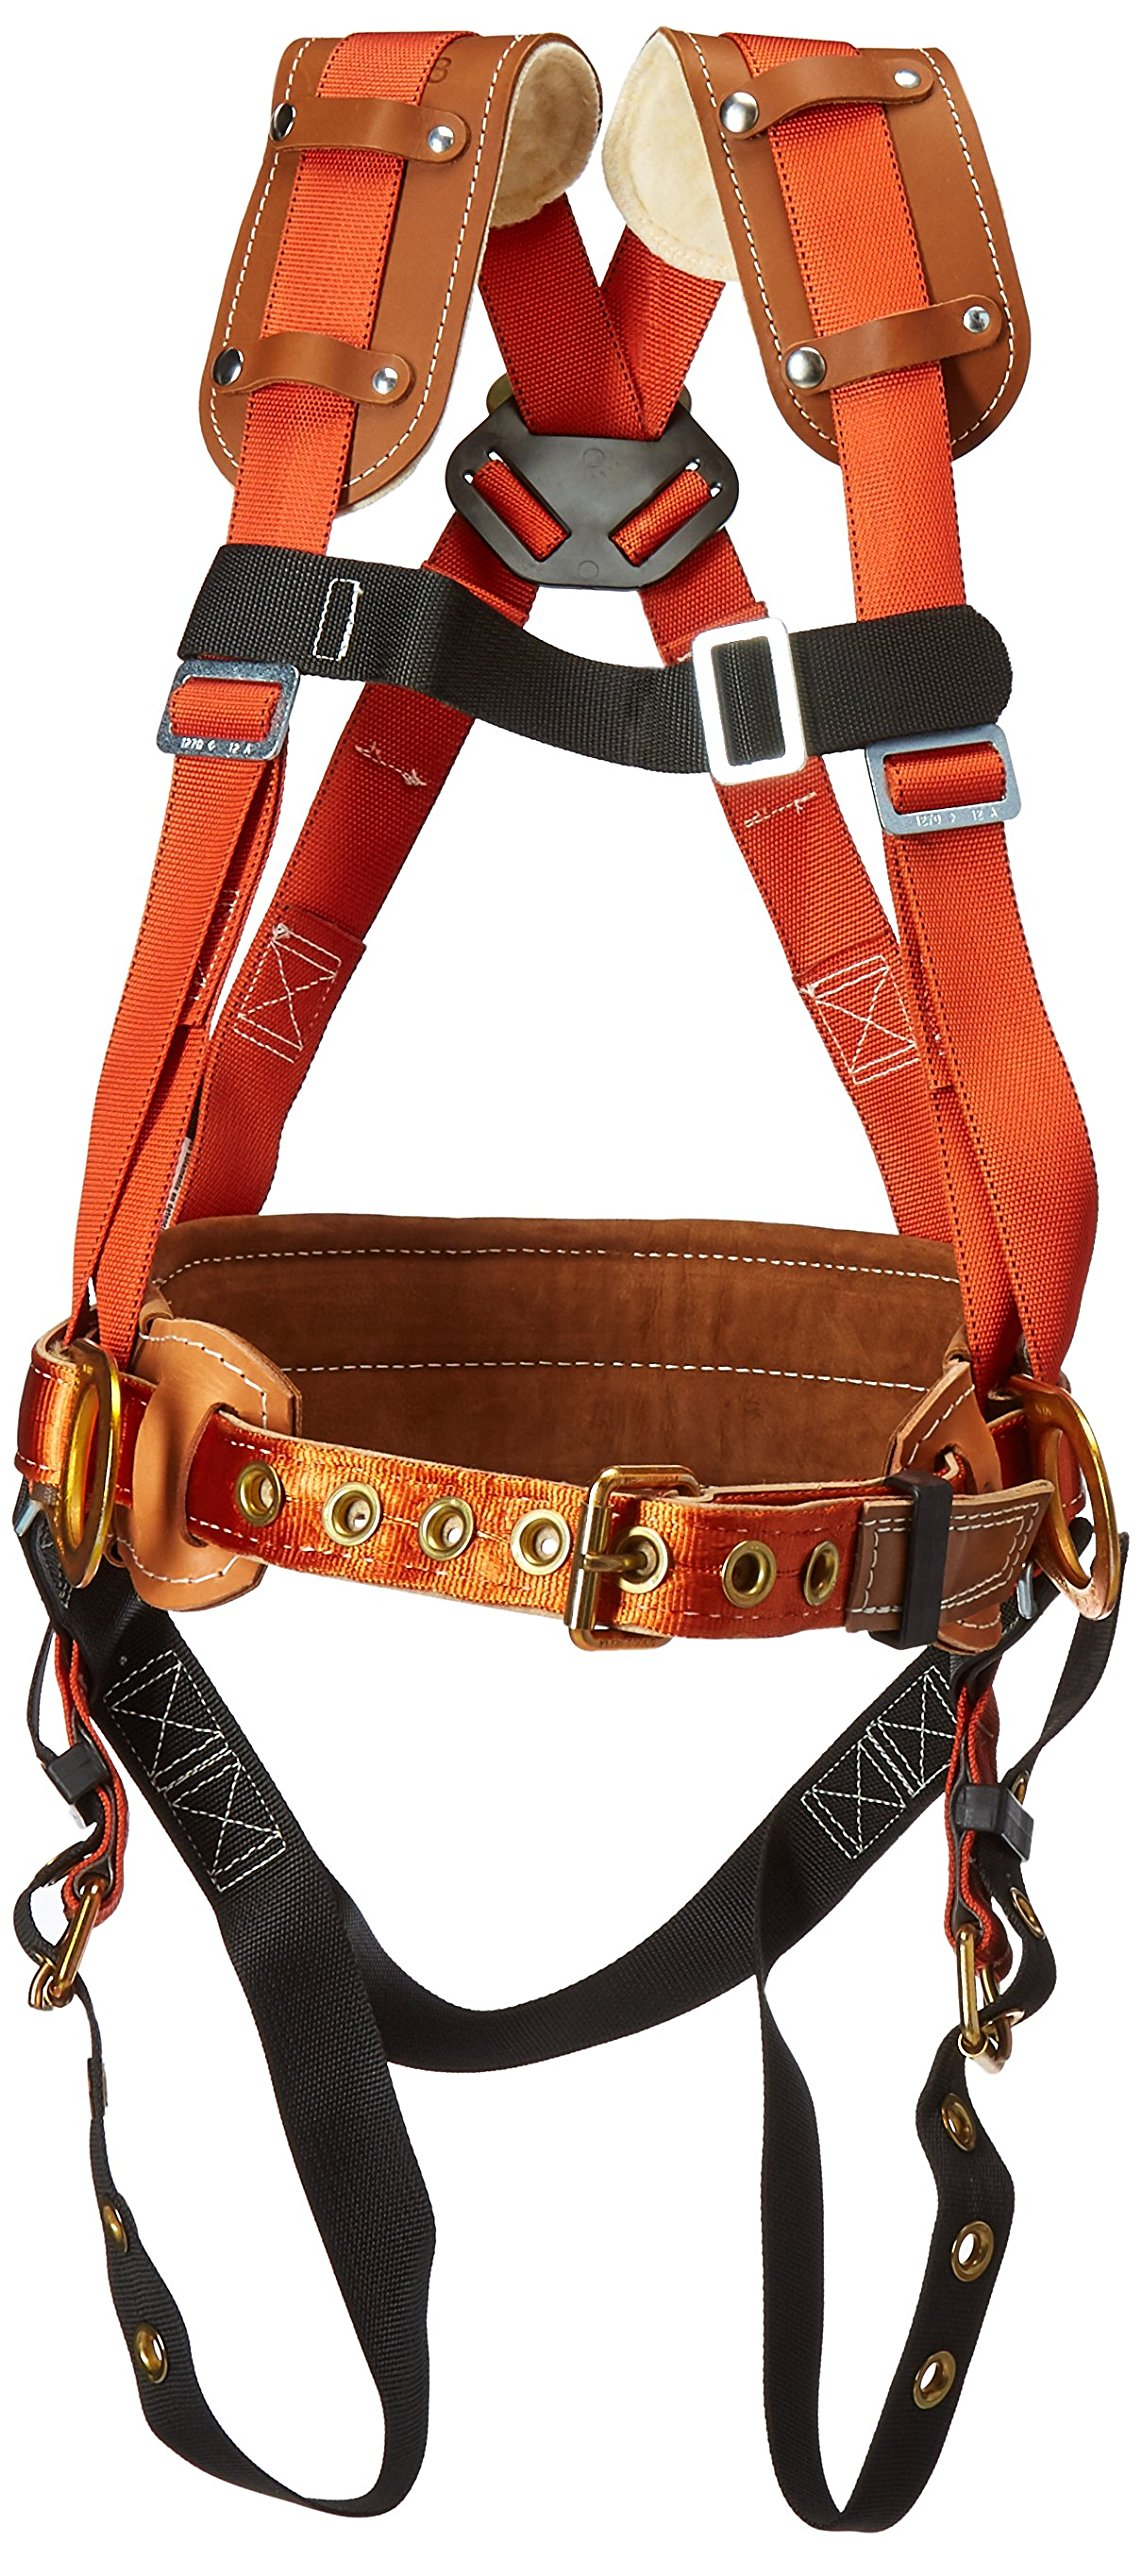 Klein Tools 87831 Fall-Arrest/Positioning Harness for Iron Work, Large